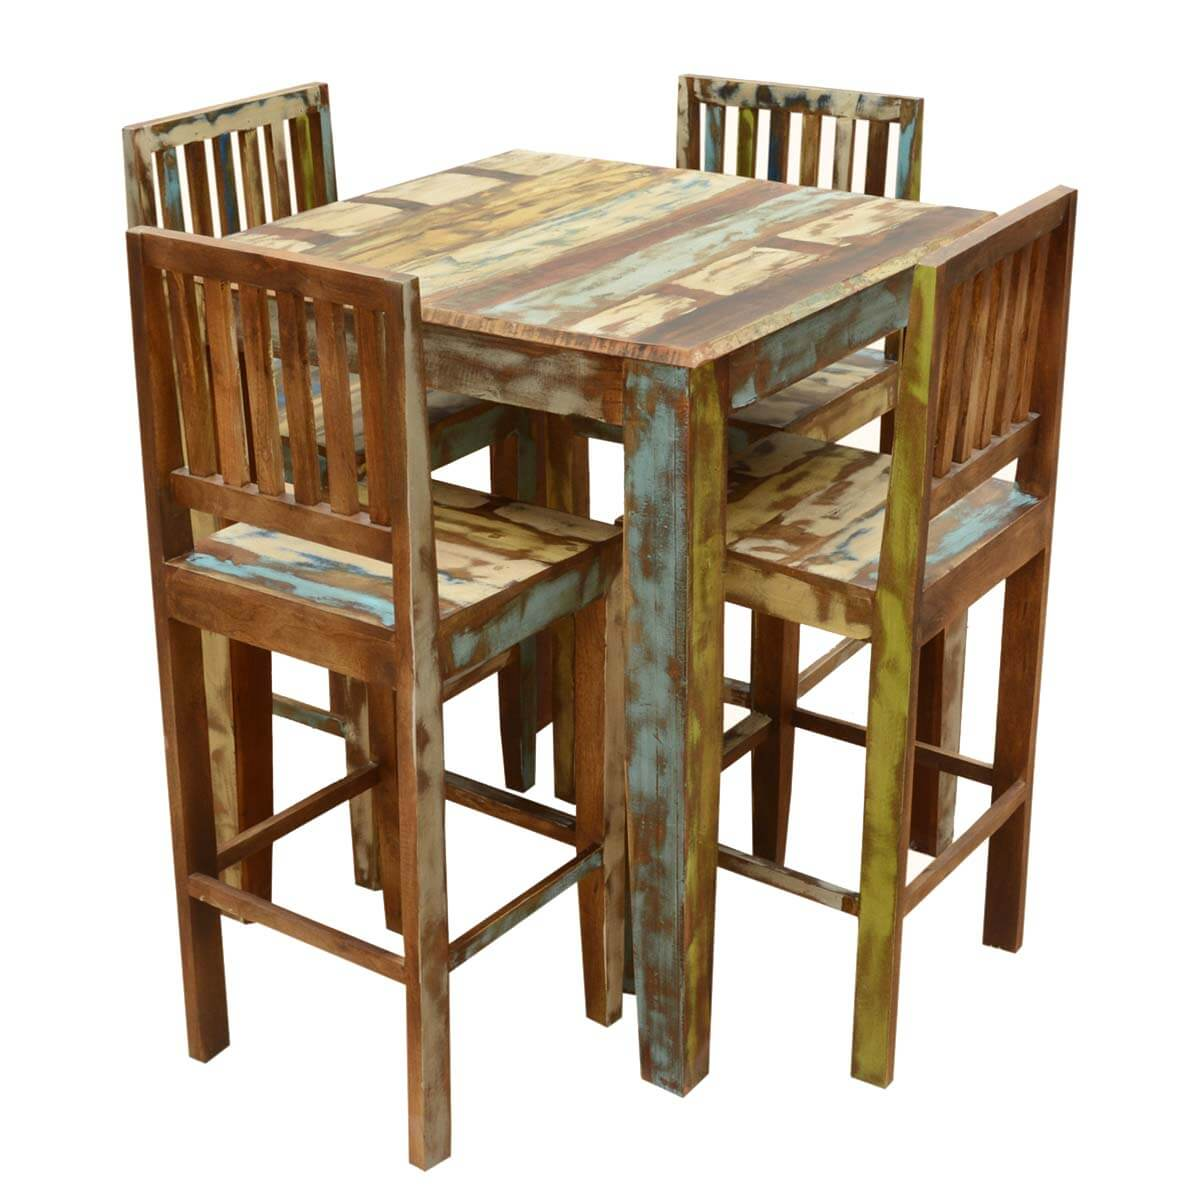 Bar Table Set Appalachian Rustic Reclaimed Wood High Bar Table And Chair Set